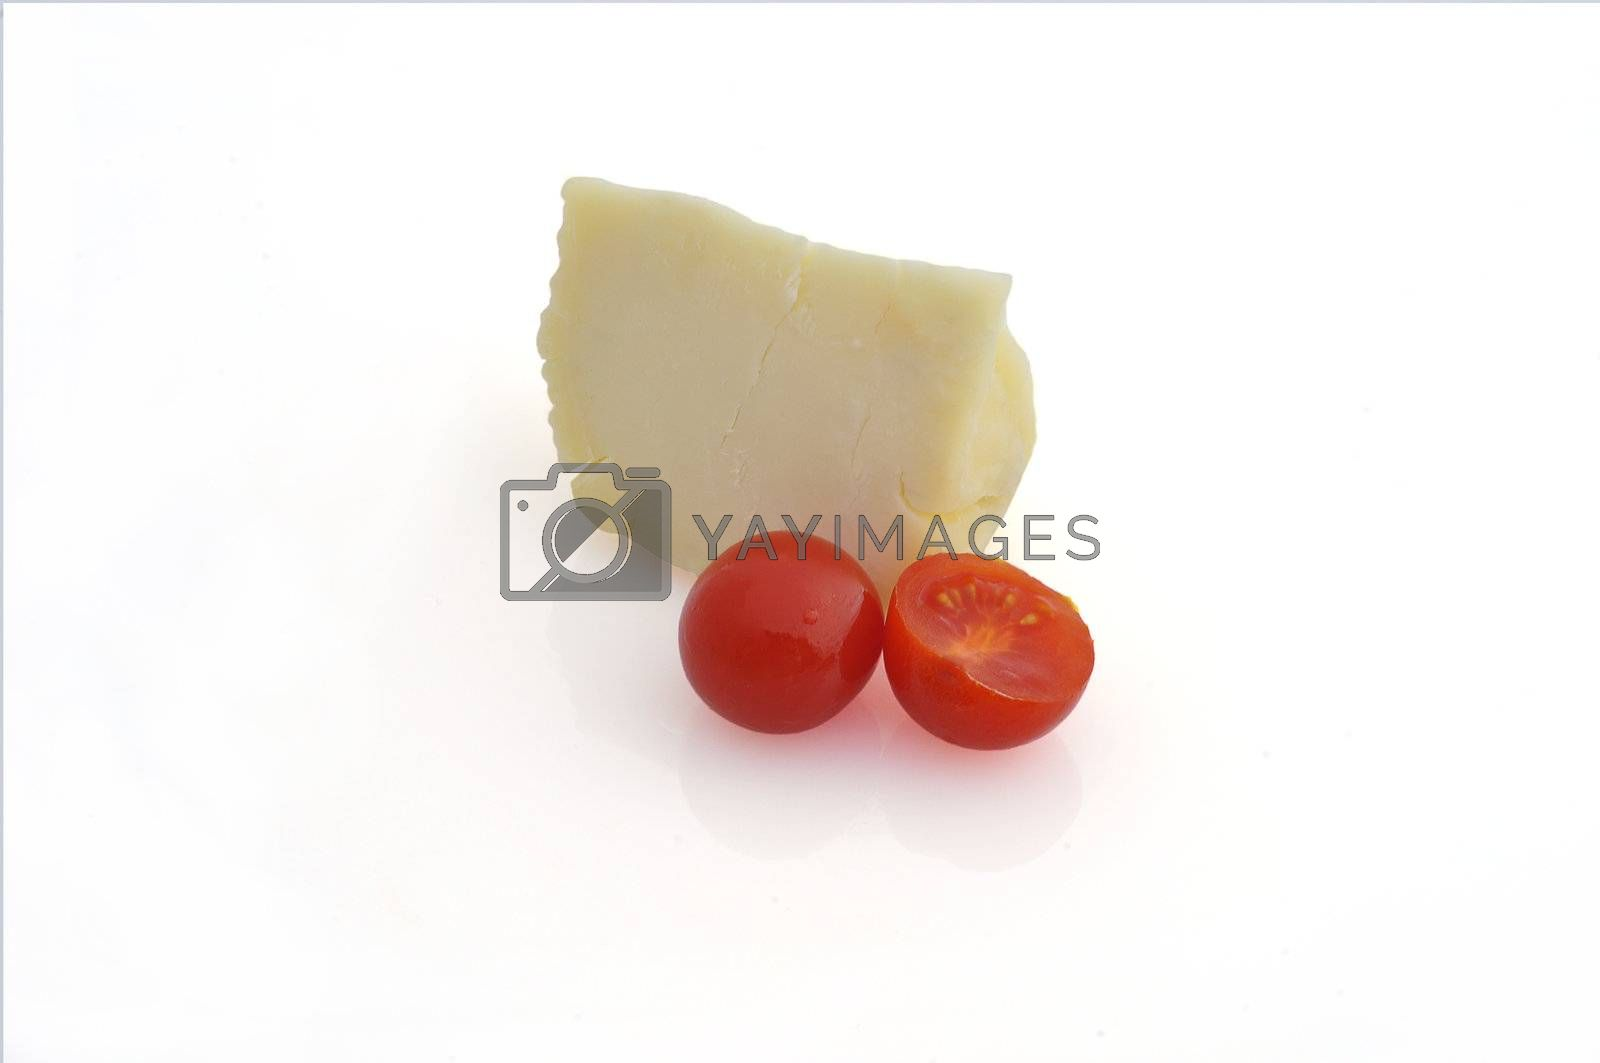 a piece of cheese and tomatoes on white background